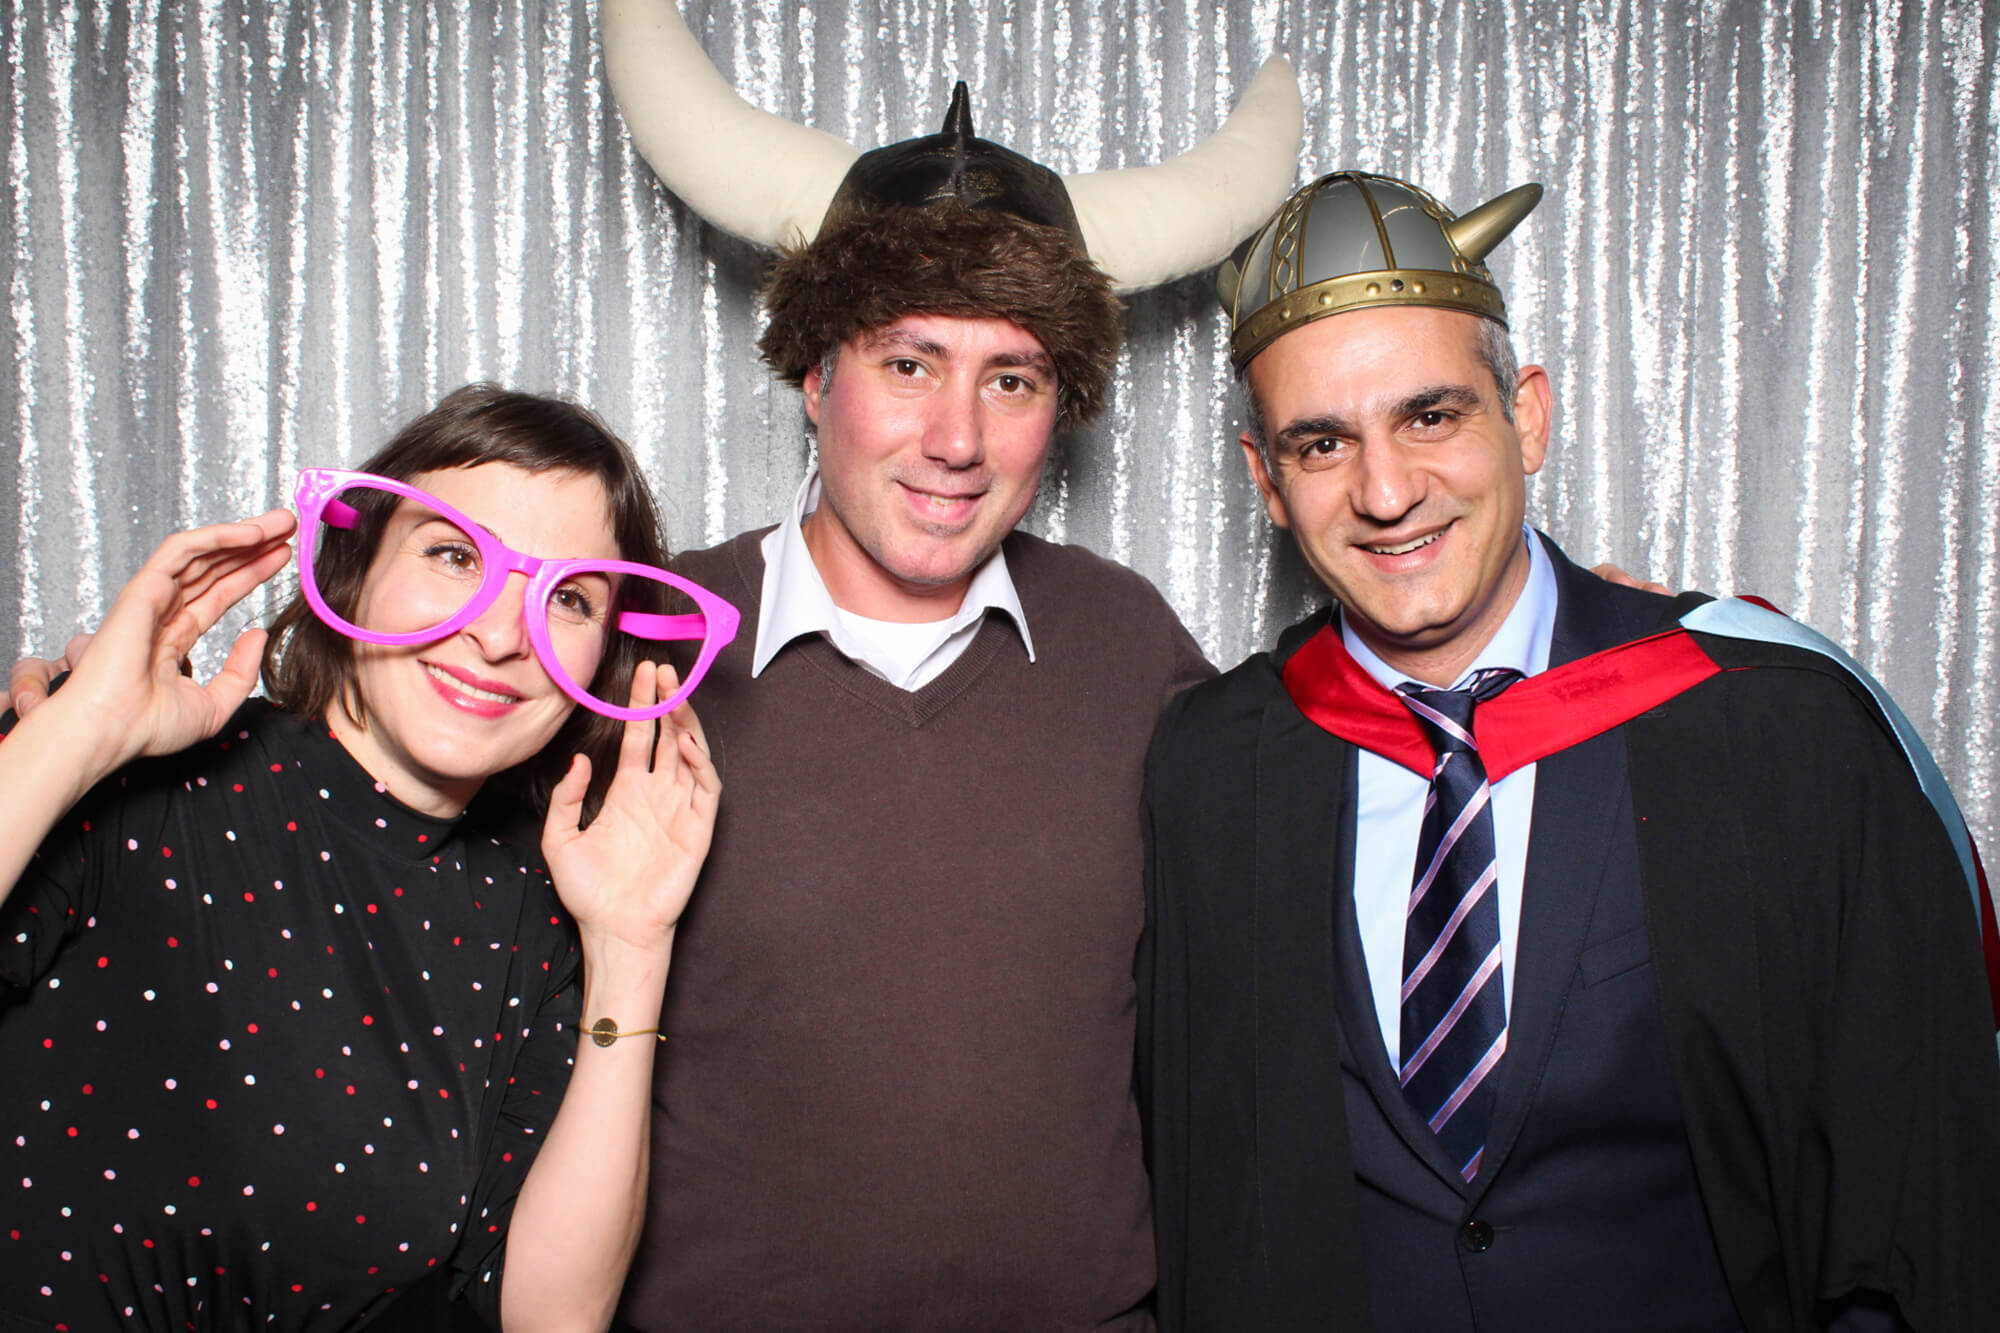 Online student George Papakyritsis at photobooth with friends on his graduation day